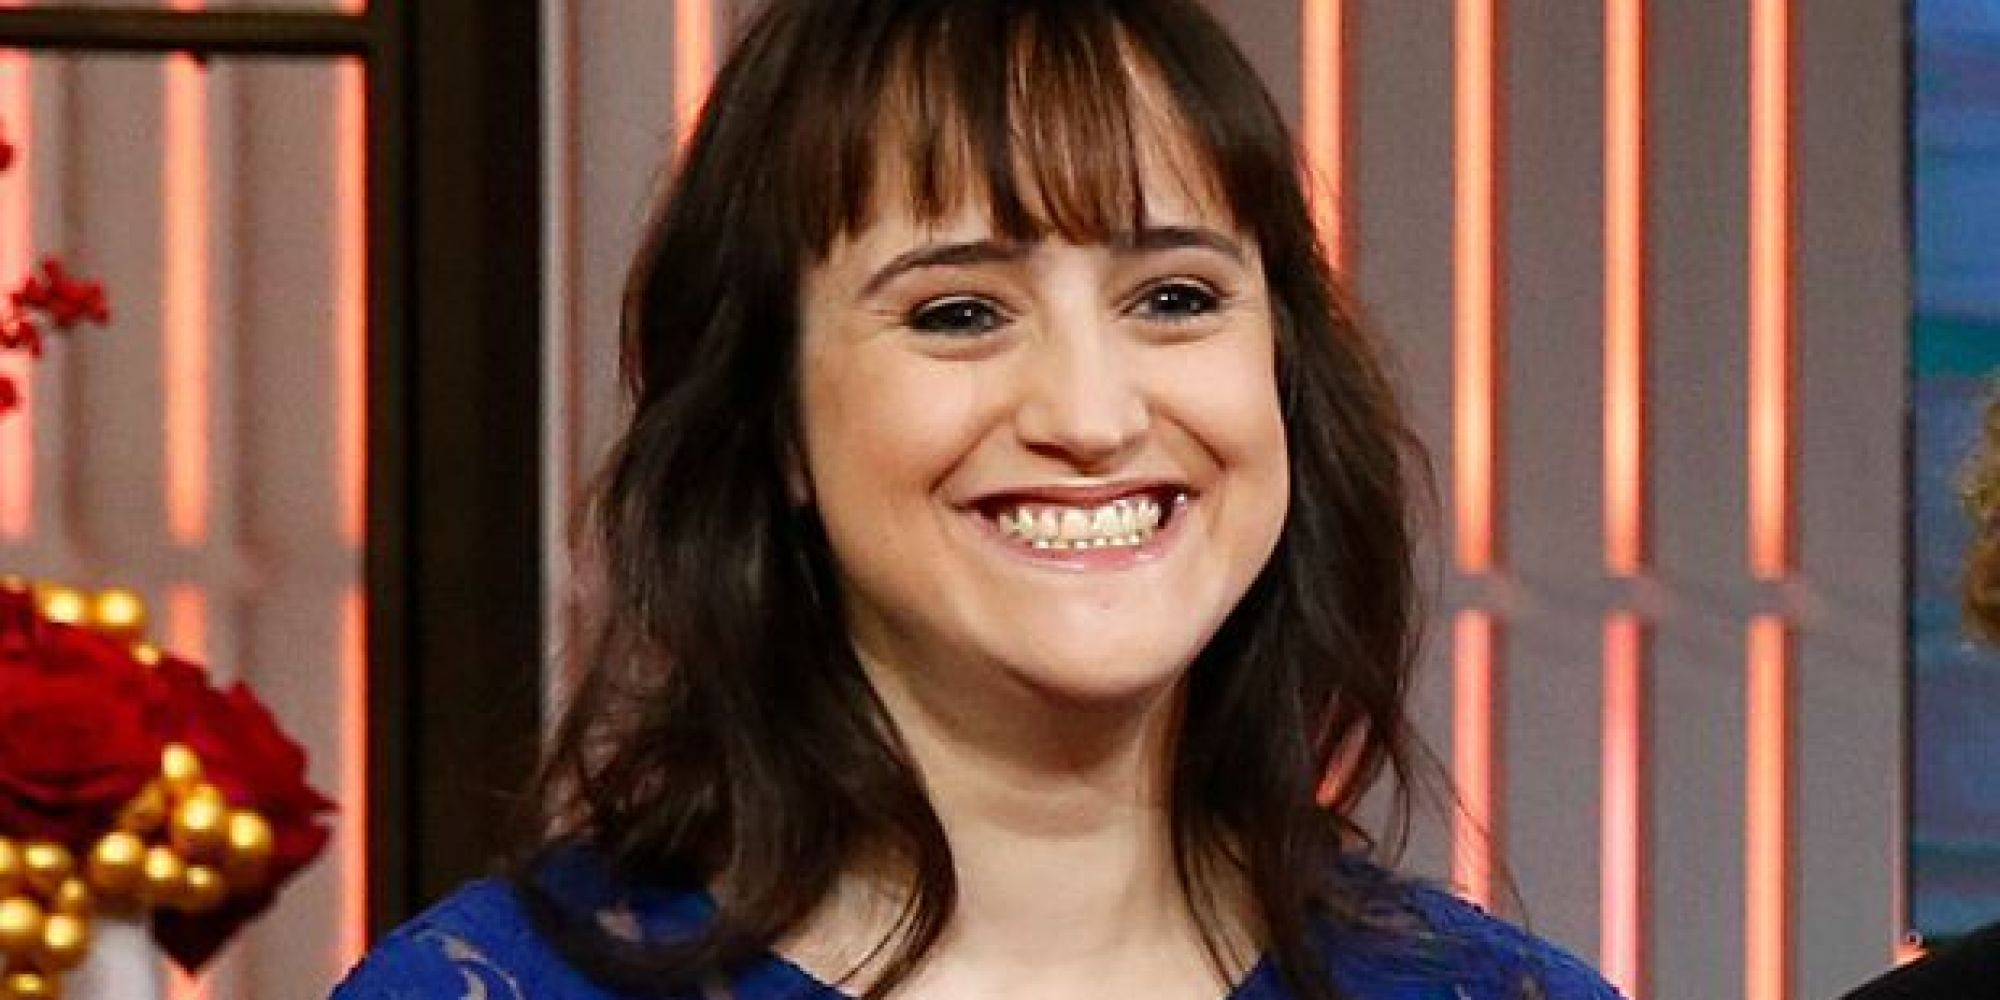 Former Child Actress Mara Wilson Shares Her Experiences With Mental Illness - o-MARA-WILSON-facebook